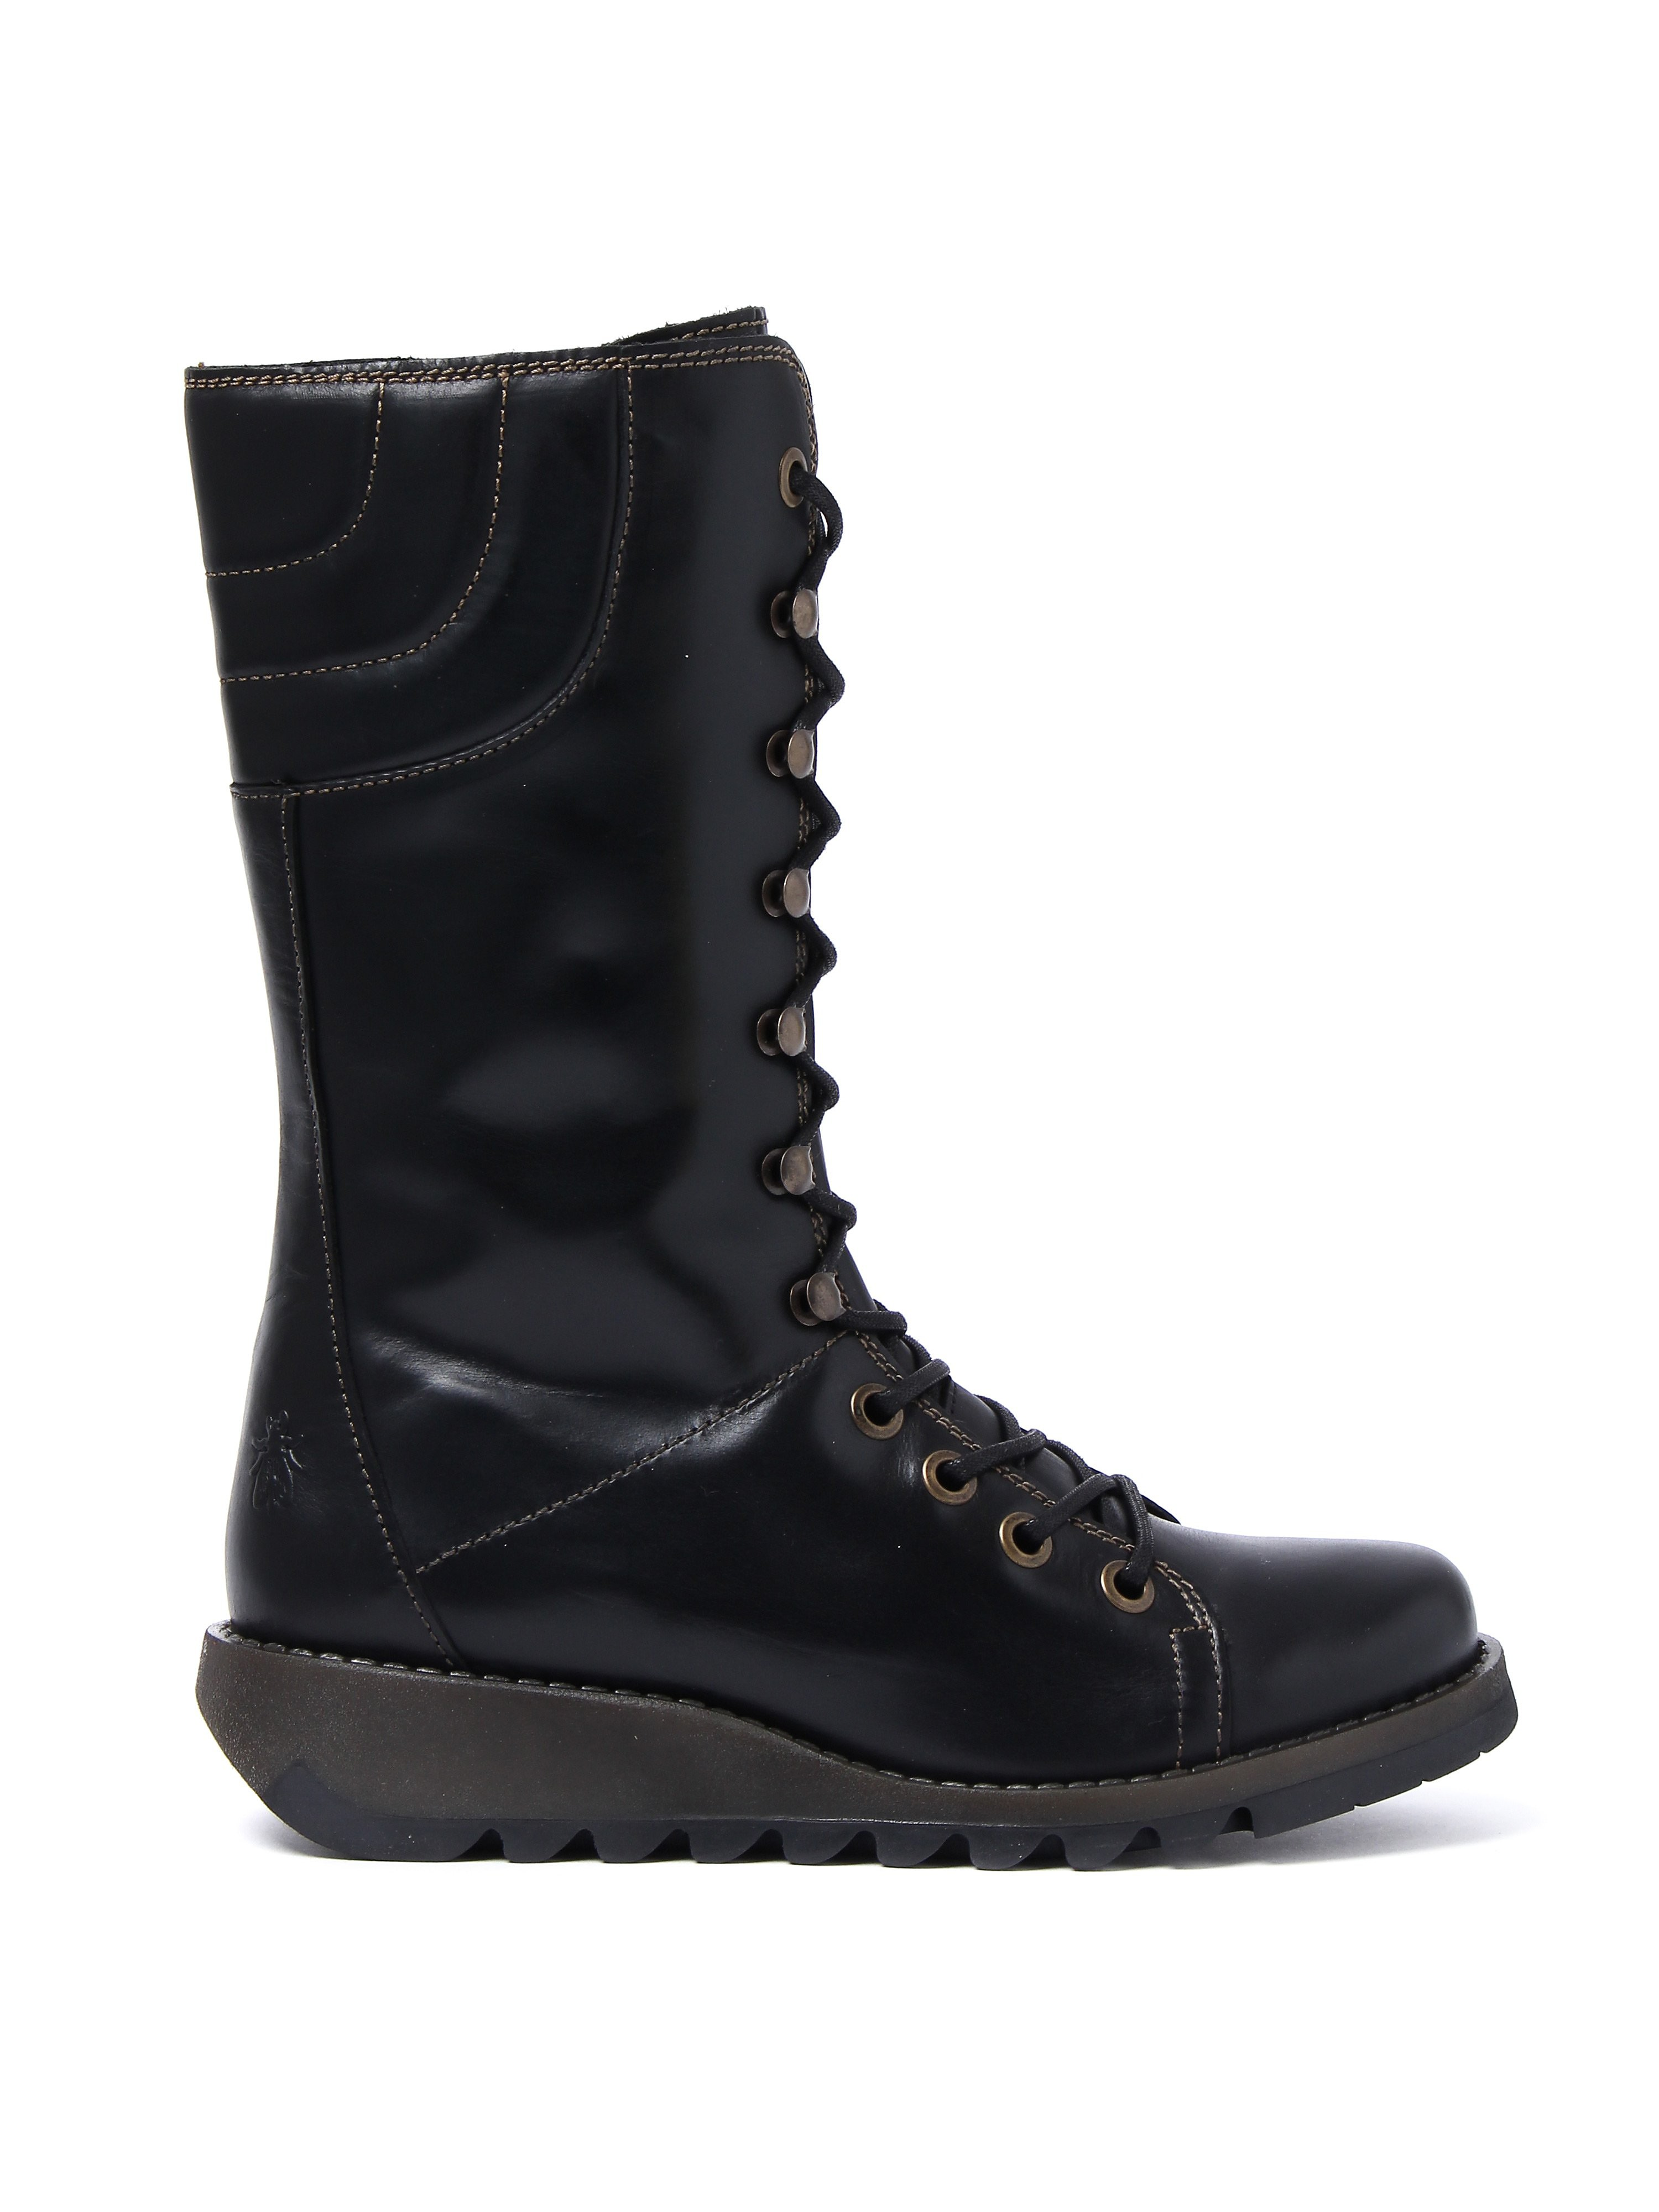 Fly London Women's Ster768fly Rug Boots - Black Leather